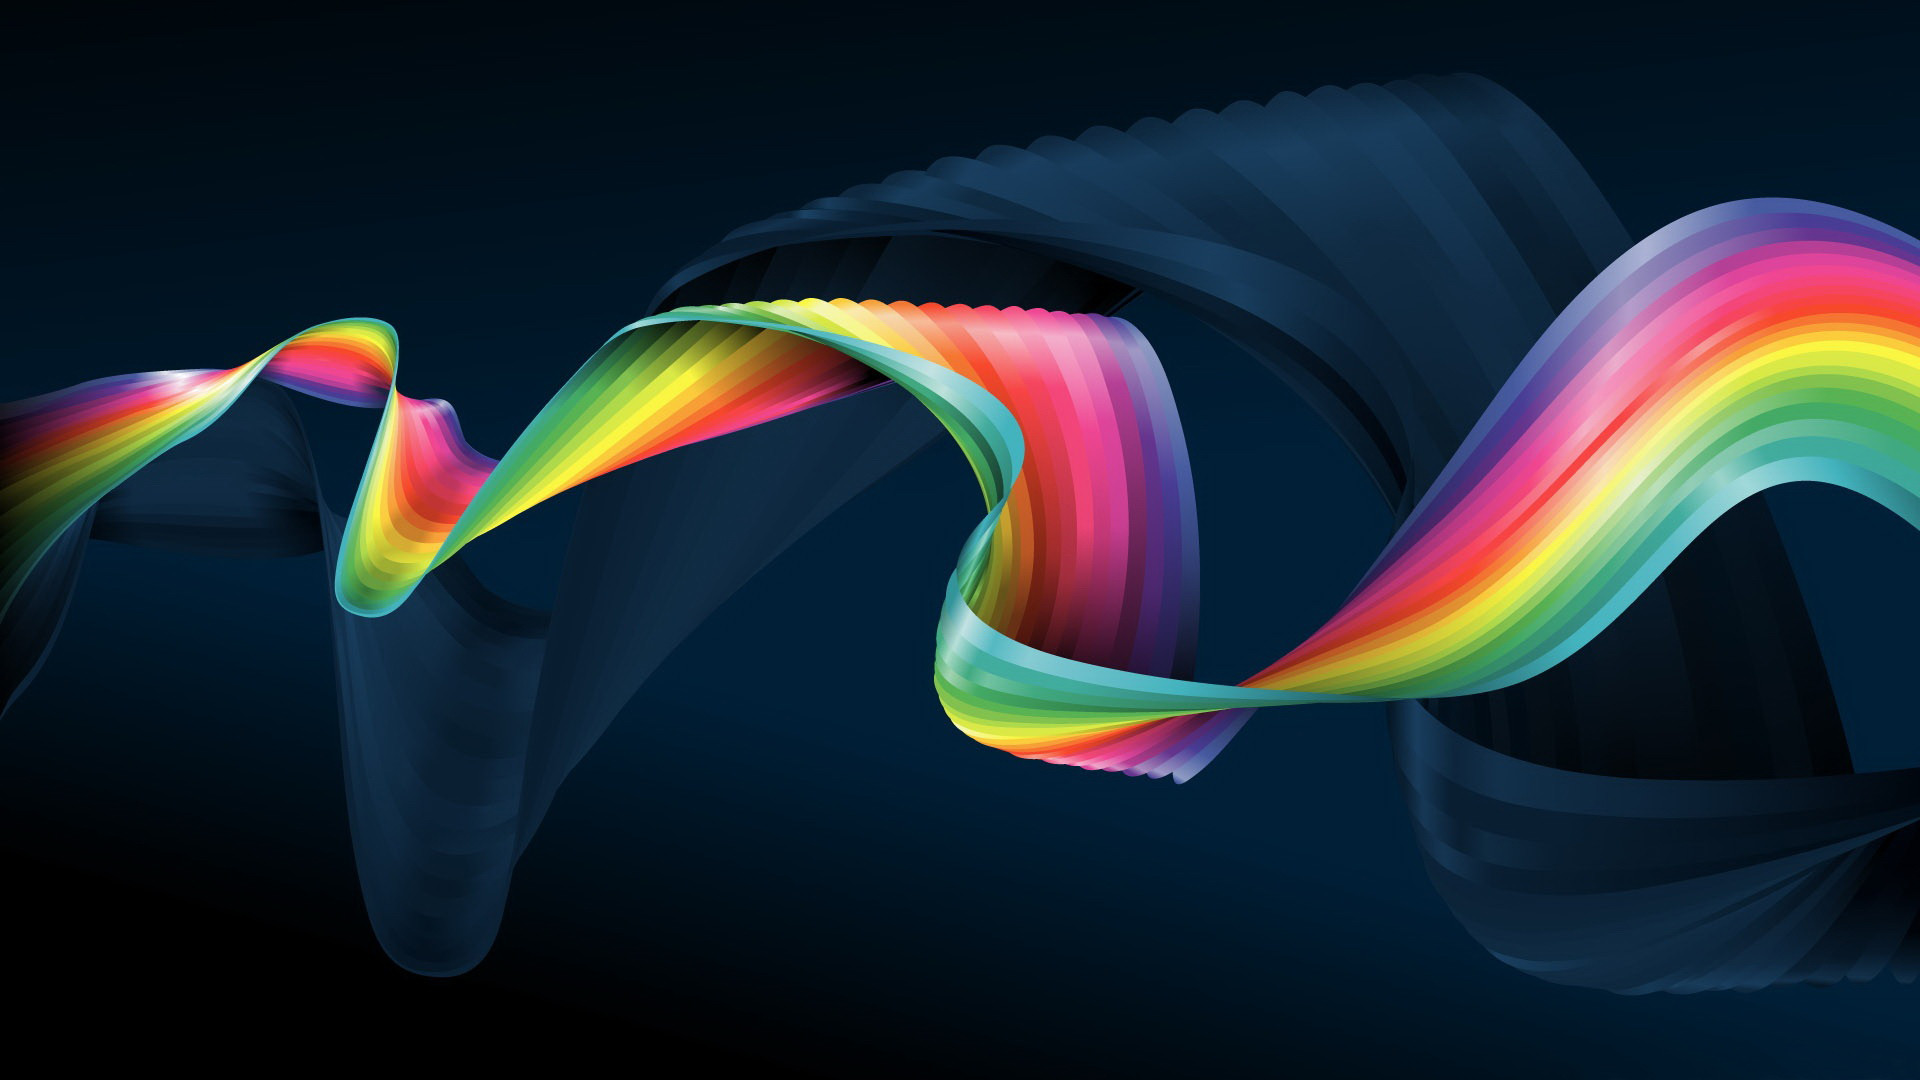 abstract-rainbow-pictures-to-color-hd-desktop-wallpaper-